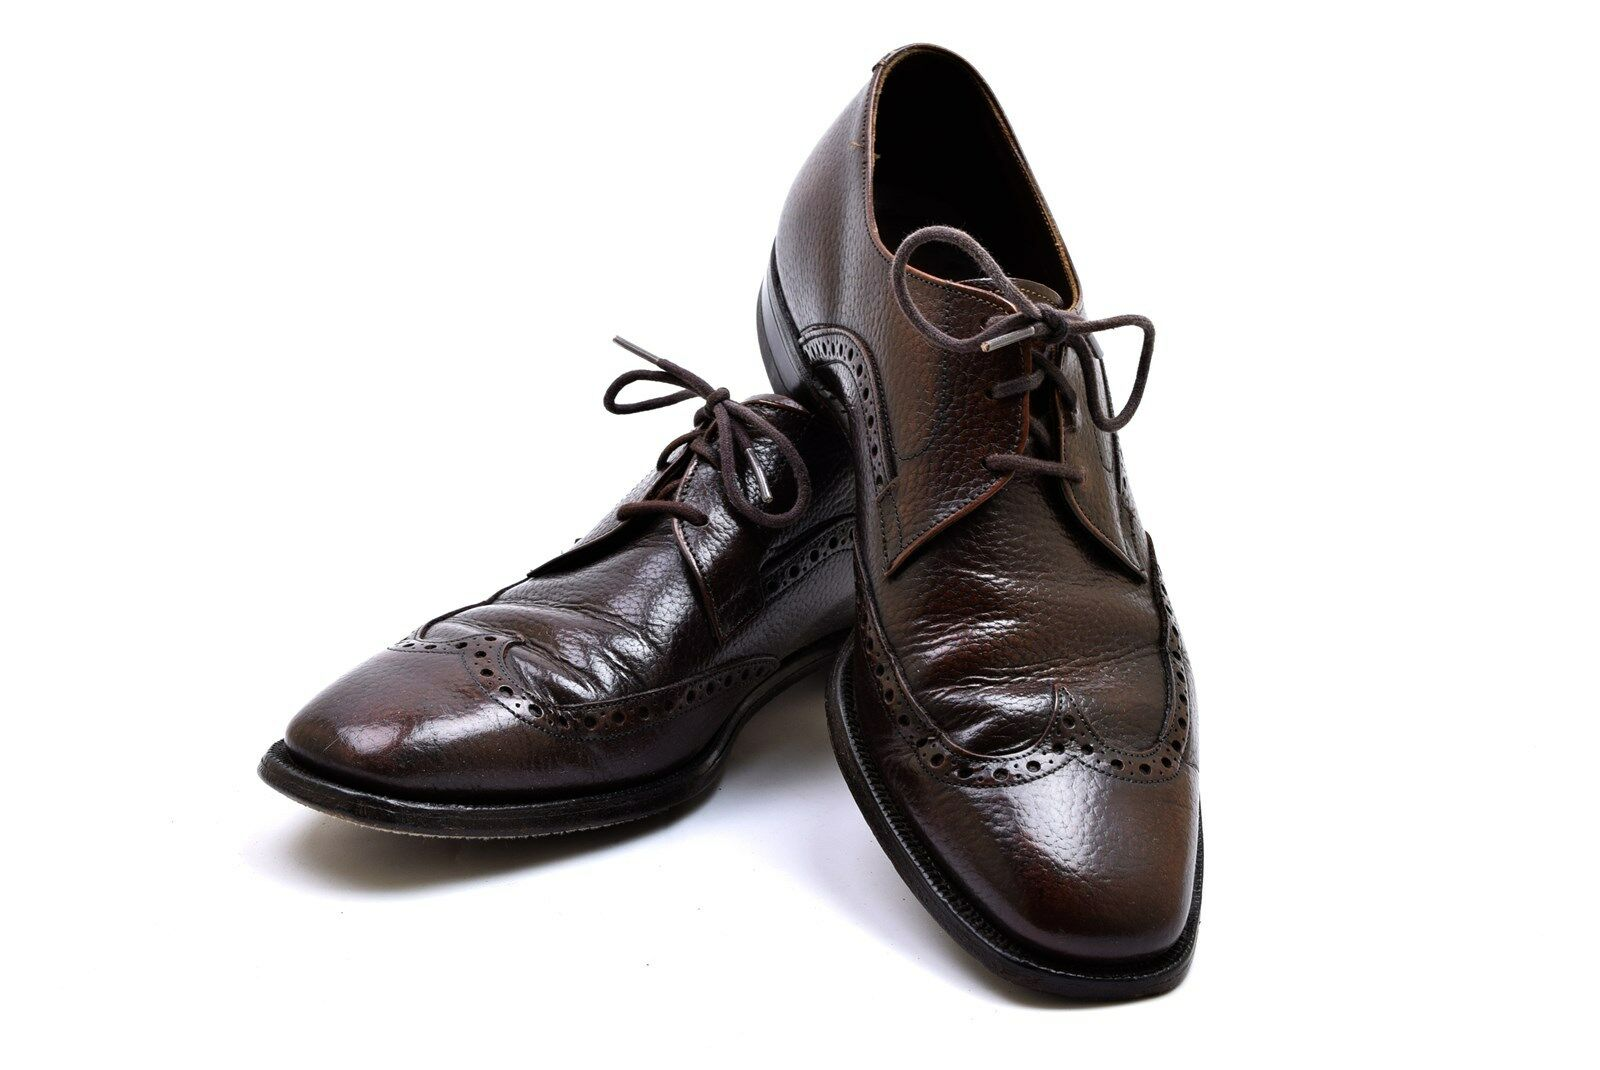 Johnston & Murphy schuhe braun Pebbled Leather Wing Tip Oxford Größe 8 D